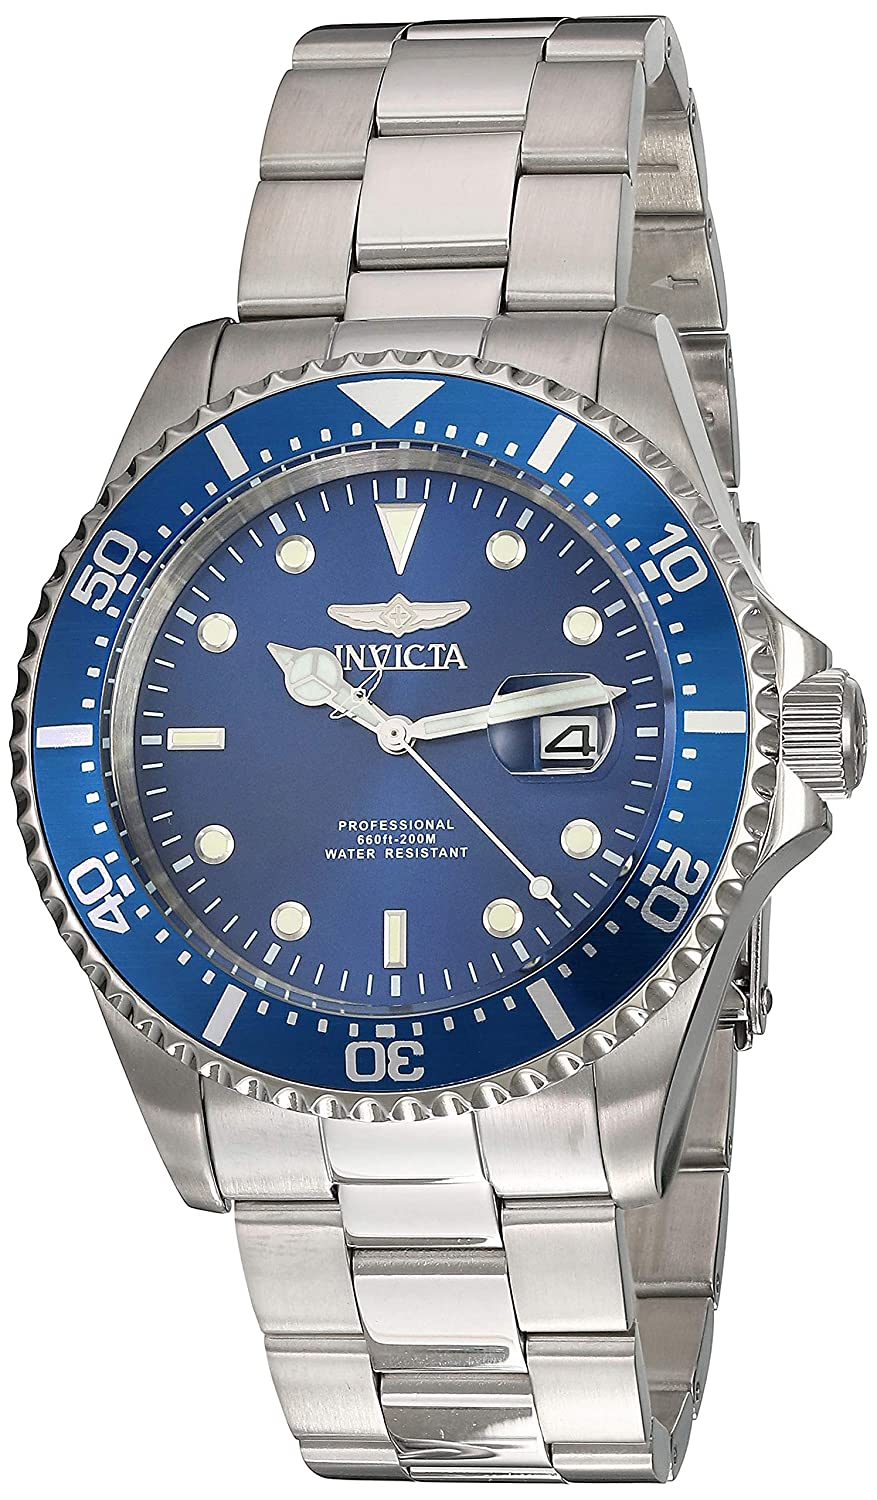 Invicta Men s Pro Diver Quartz Diving Watch with Stainless-Steel Strap, Silver, 22 Model 22019